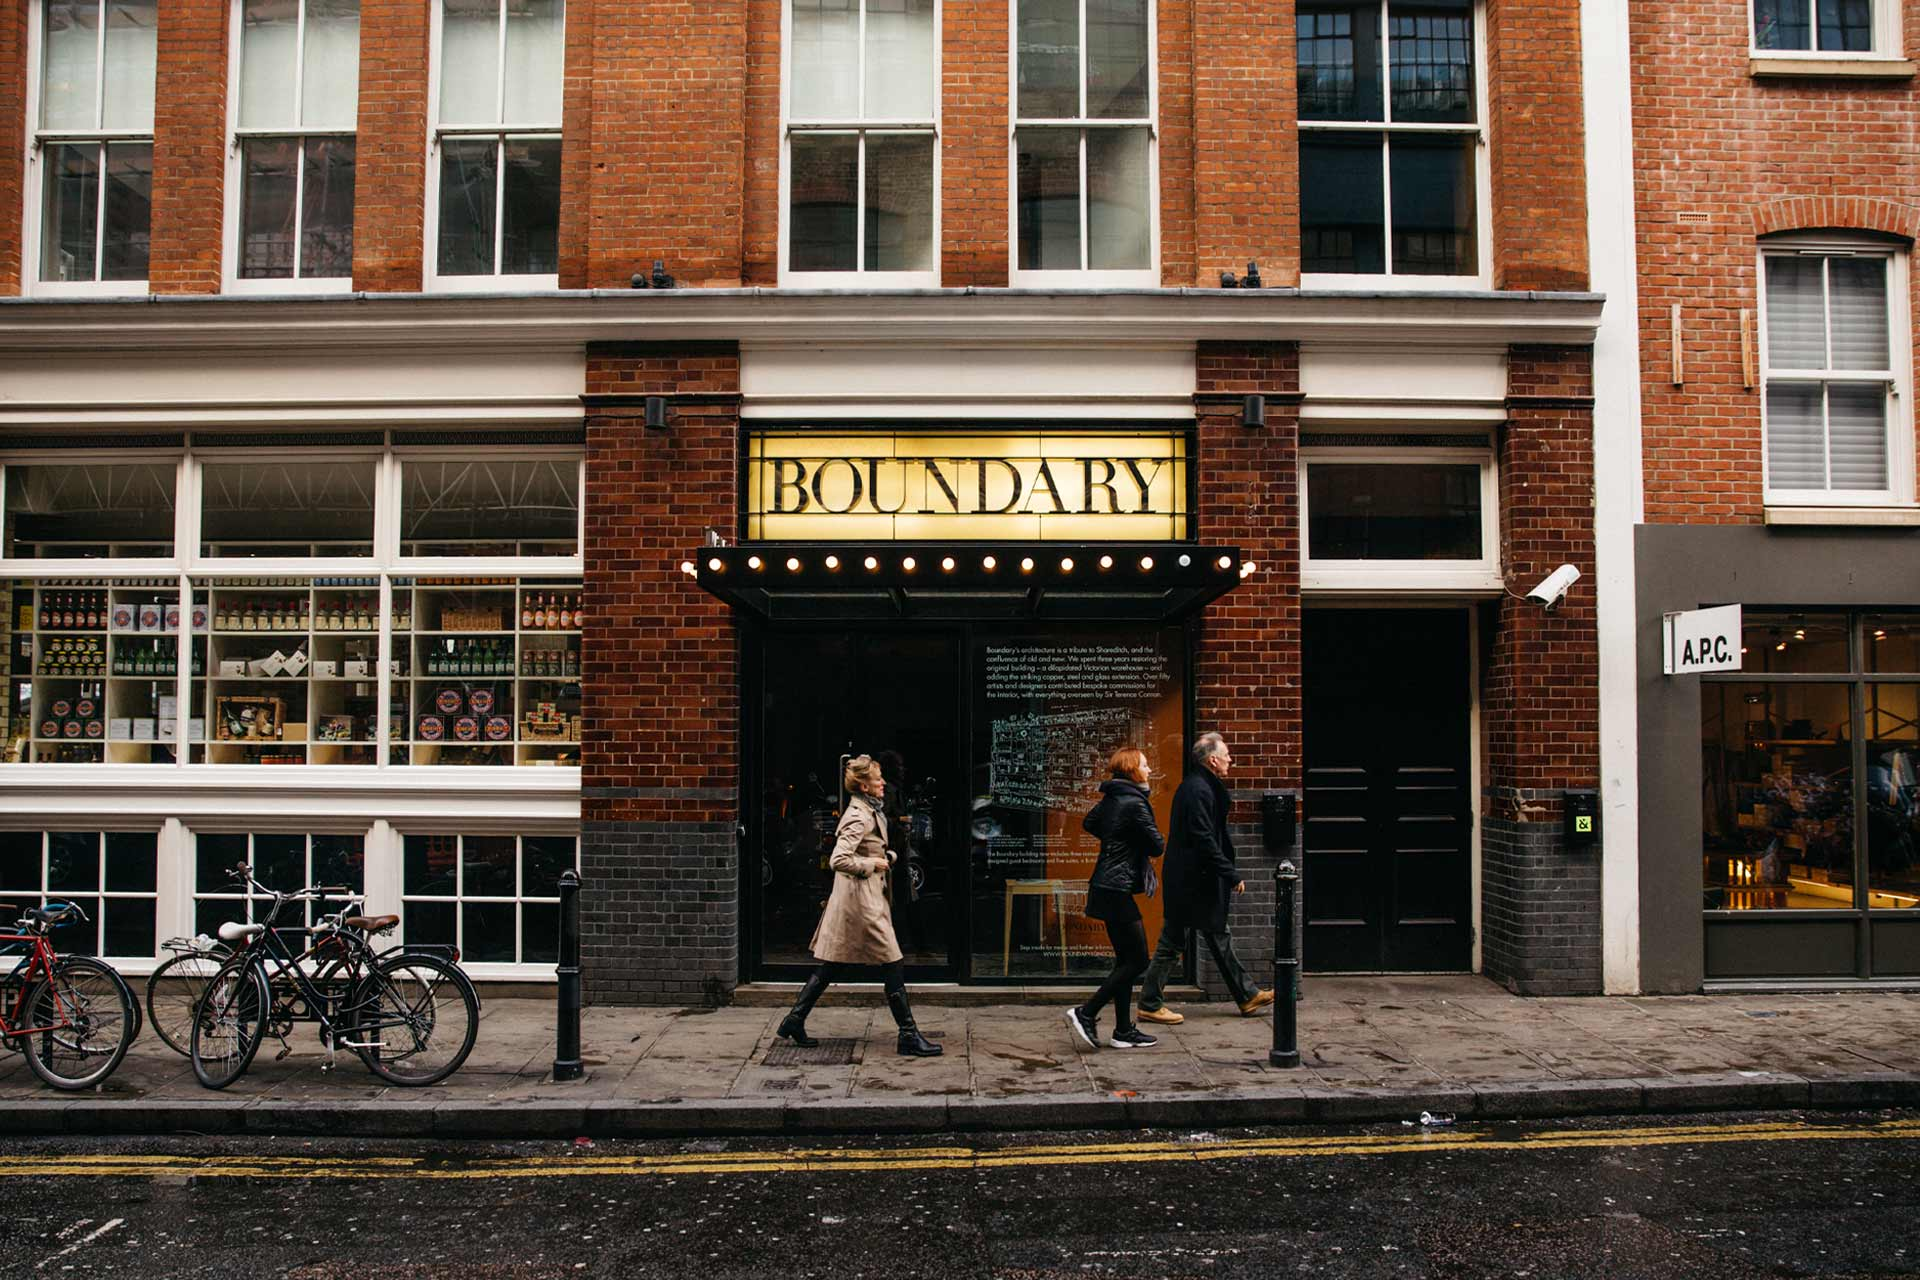 Boundary hotel in Shoreditch, London